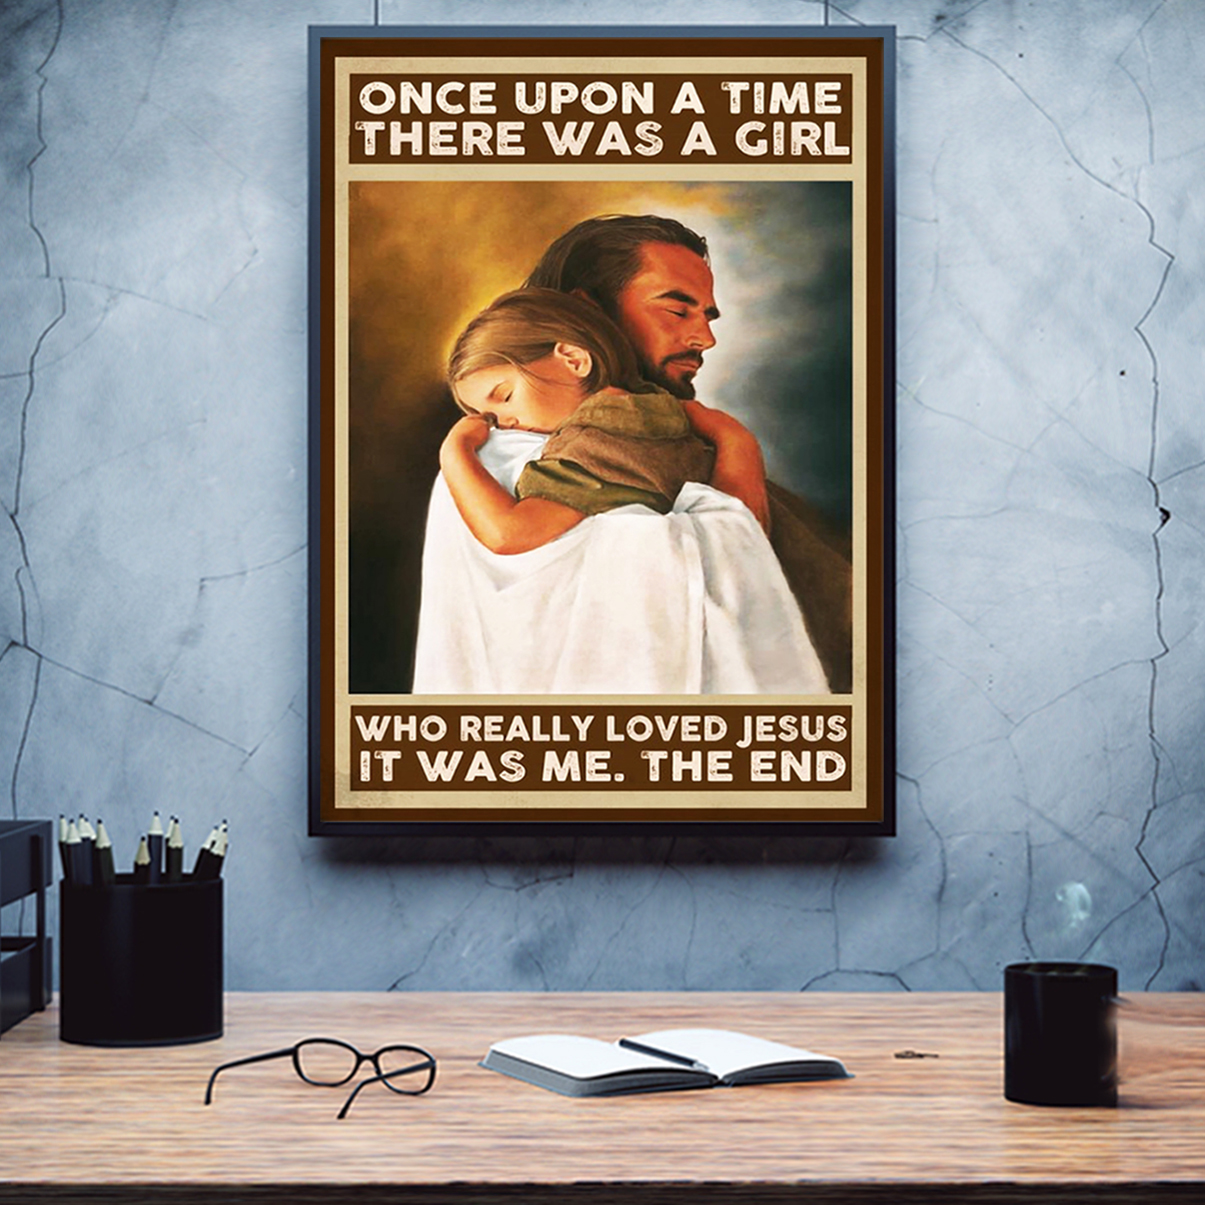 Once upon a time there was a girl who reall loved jesus poster A3